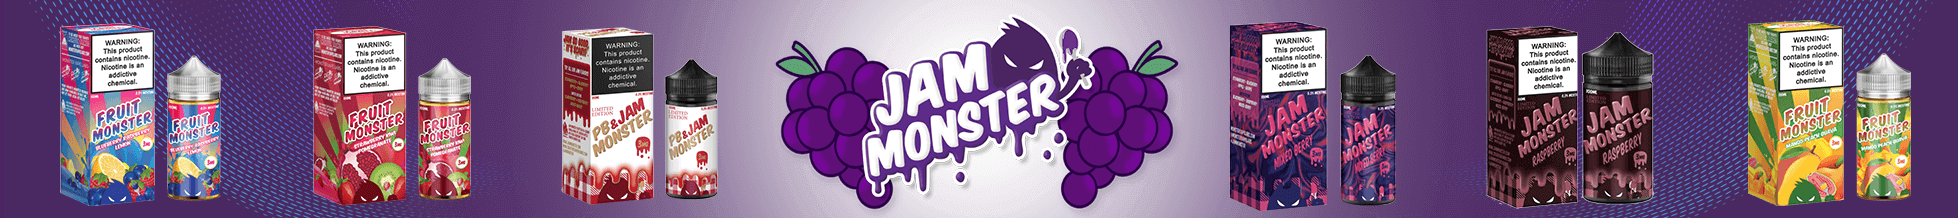 jam-monster-banner-category.png